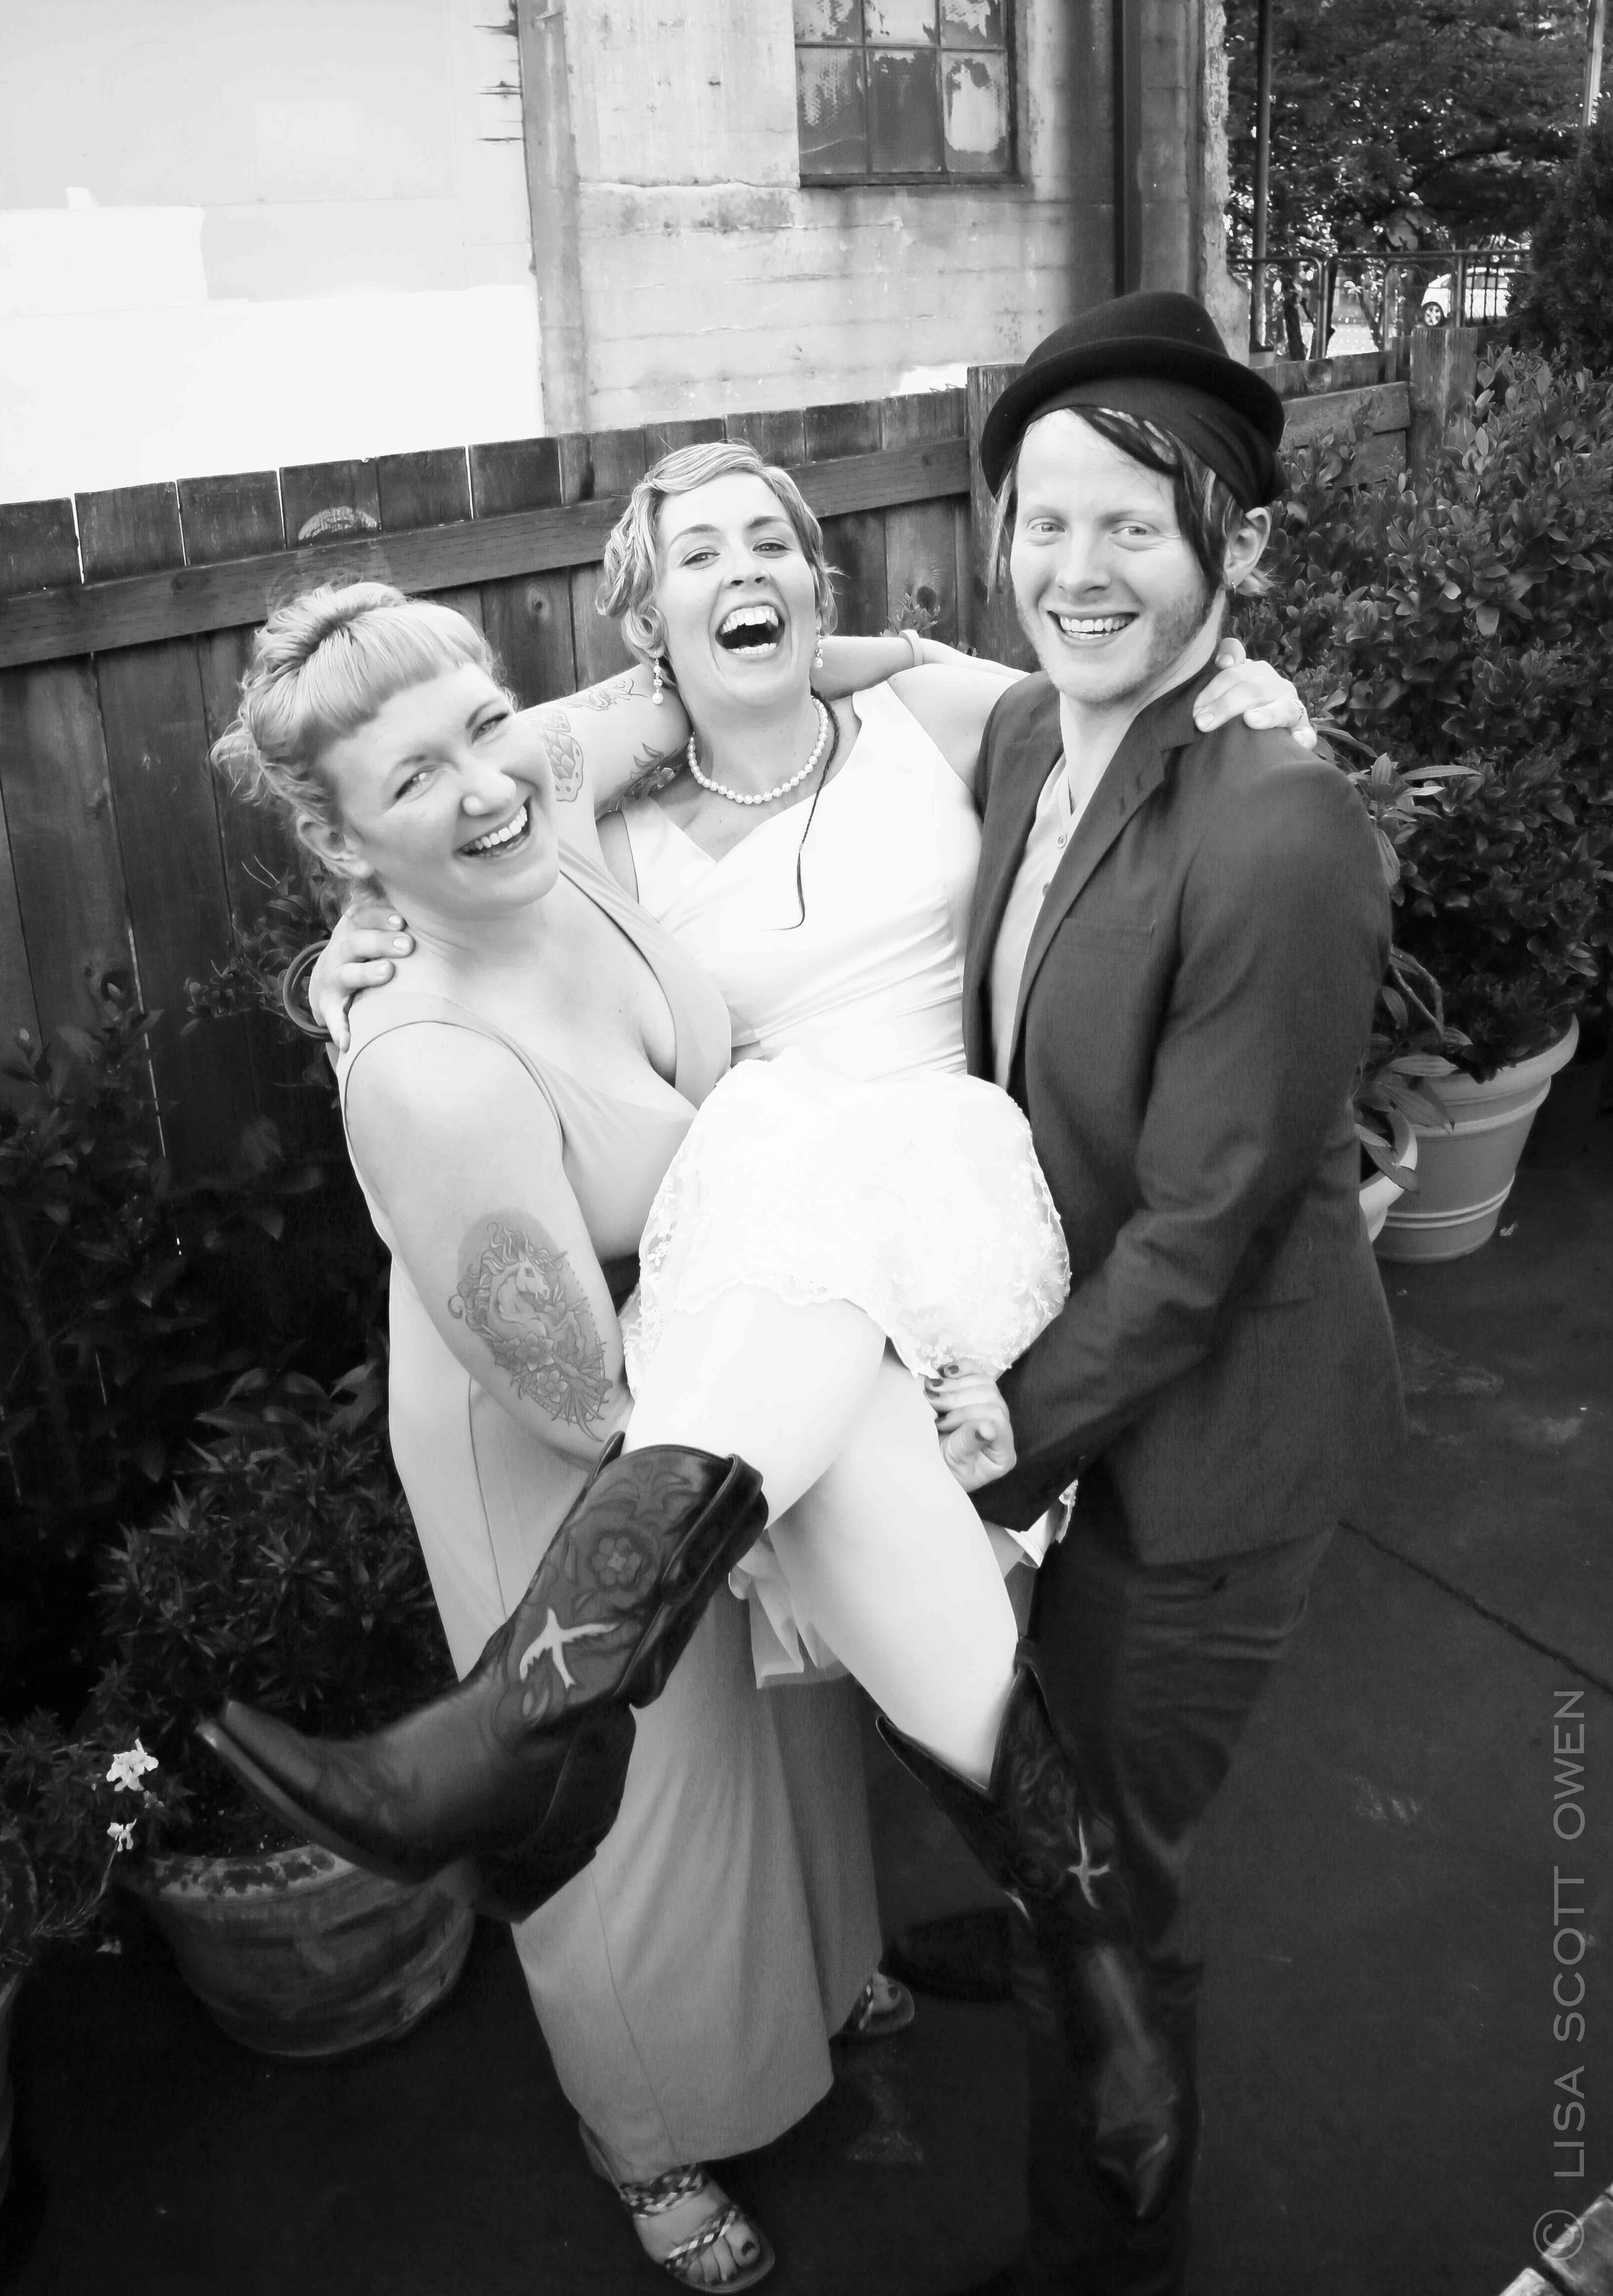 the mark wedding c 2013 lisa scott owen-1-6